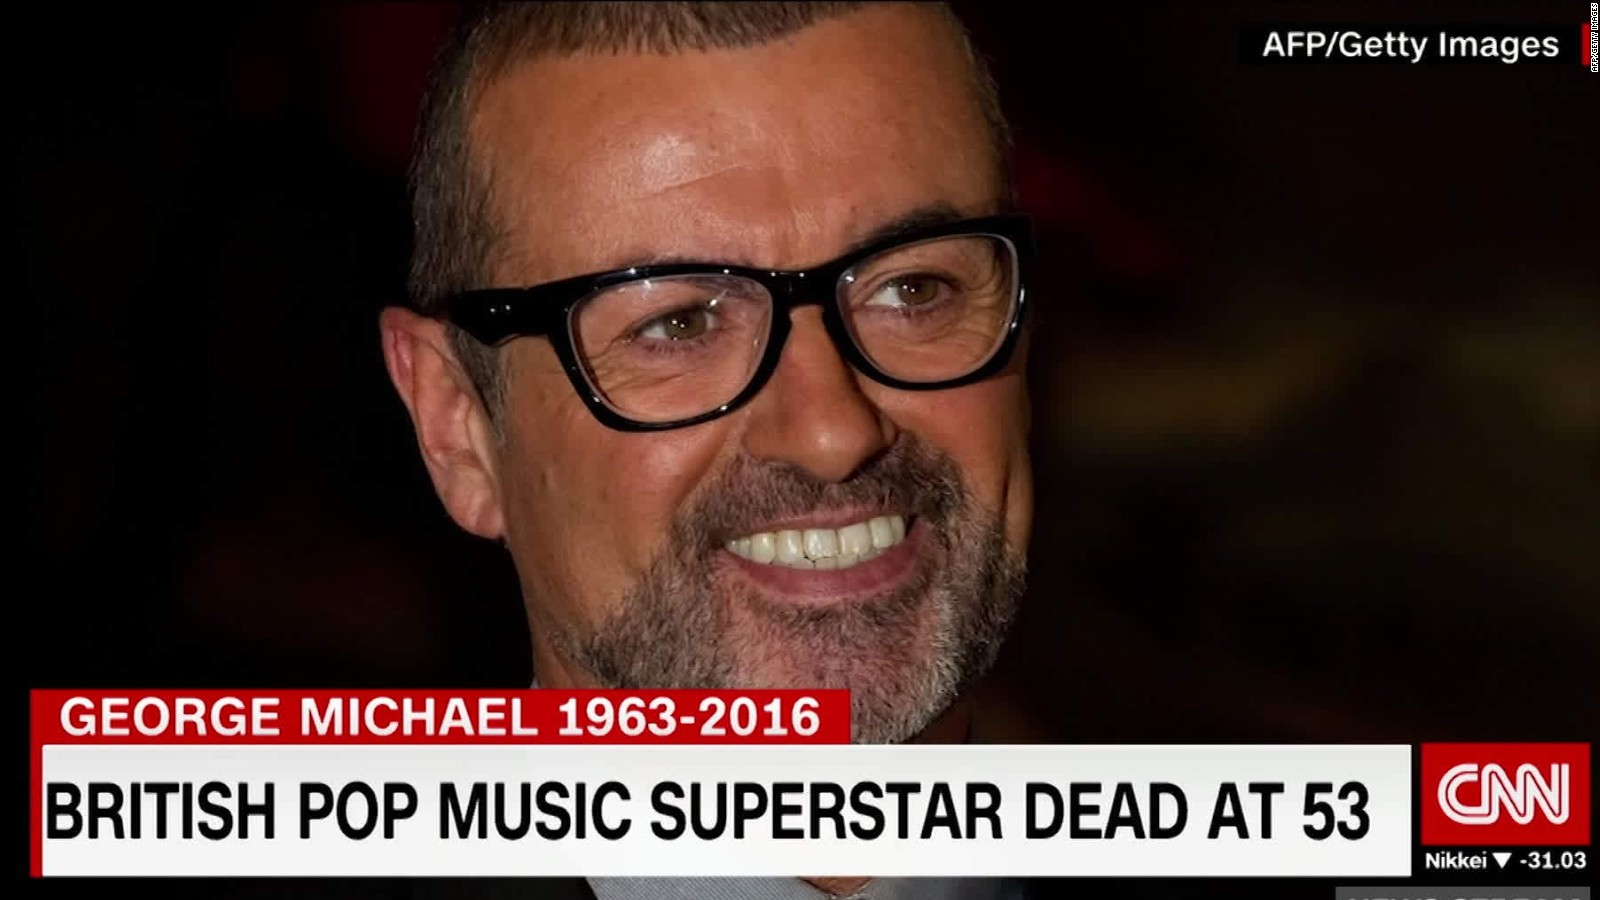 George michael pop superstar has died at 53 new york times - George Michael Pop Superstar Has Died At 53 New York Times 23